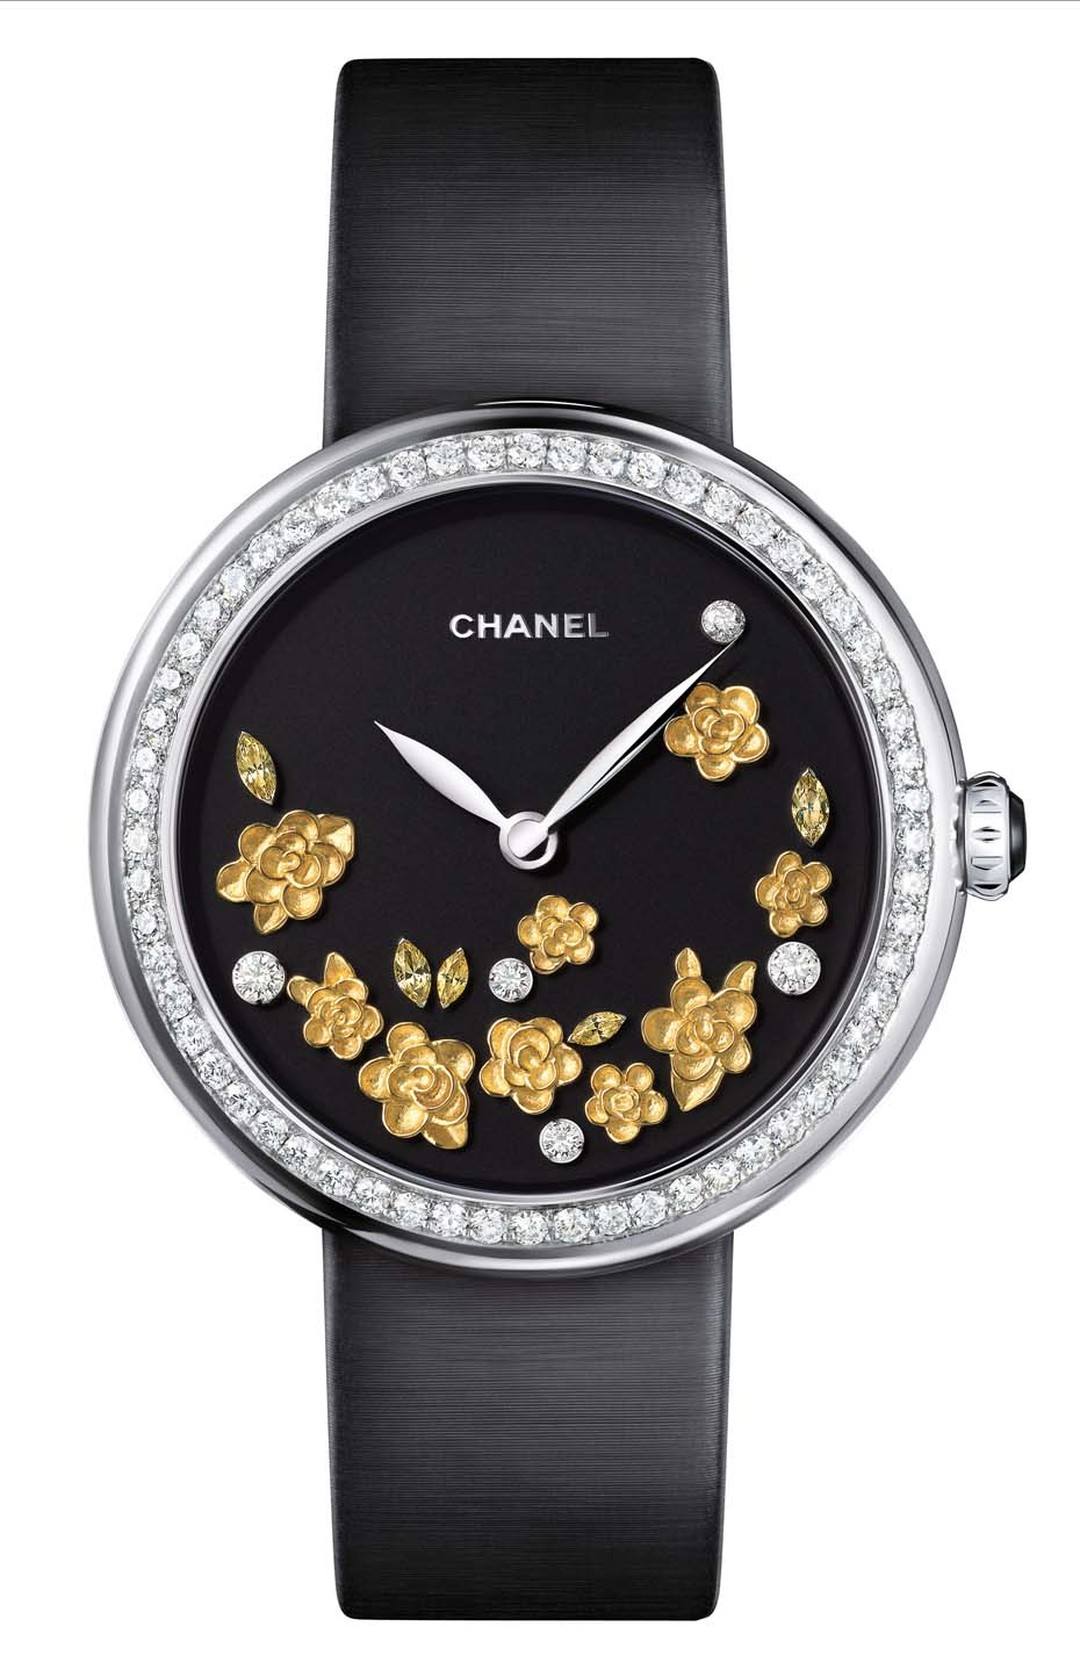 Chanel Mademoiselle Privé Gold Camellia Motif watch in white gold, with hand-engraved yellow gold camellias, diamonds and yellow sapphires on the dial and 60 brilliant-cut diamonds around the bezel